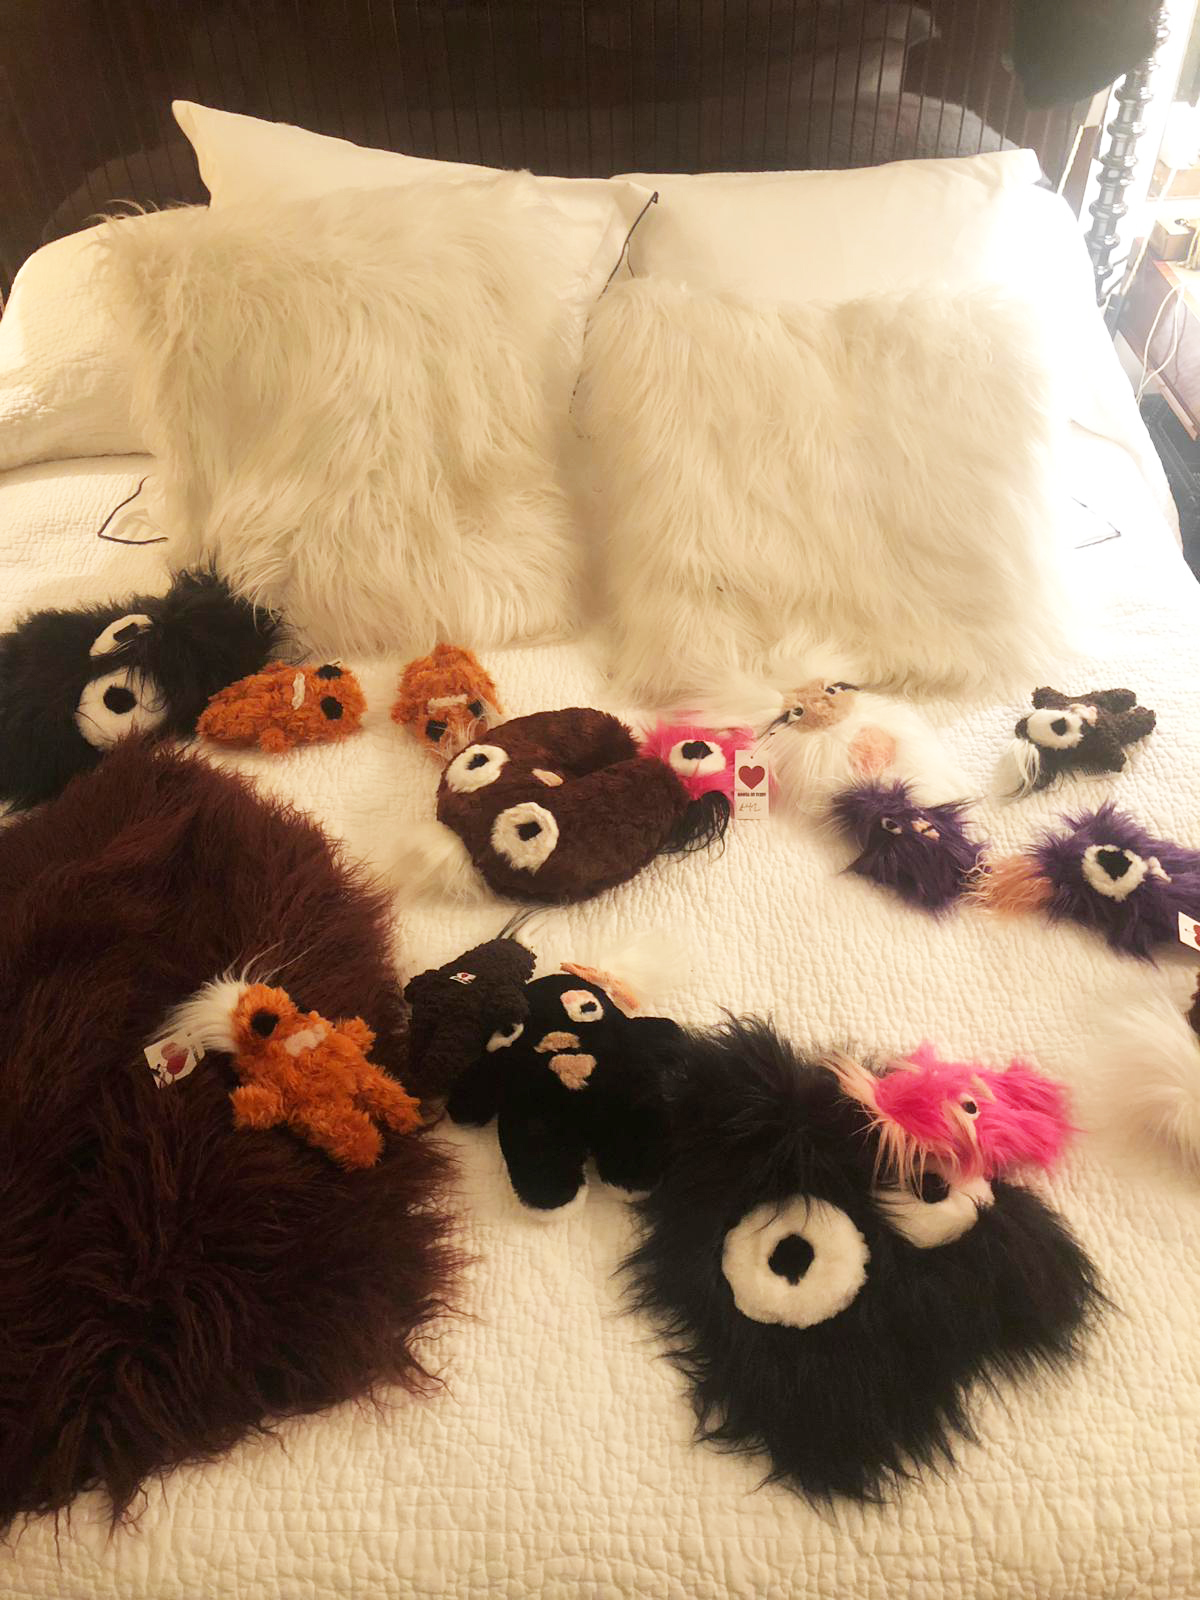 House Of Fluff's 'scrappy's are crafted from the scraps left over from making its coats and jackets.